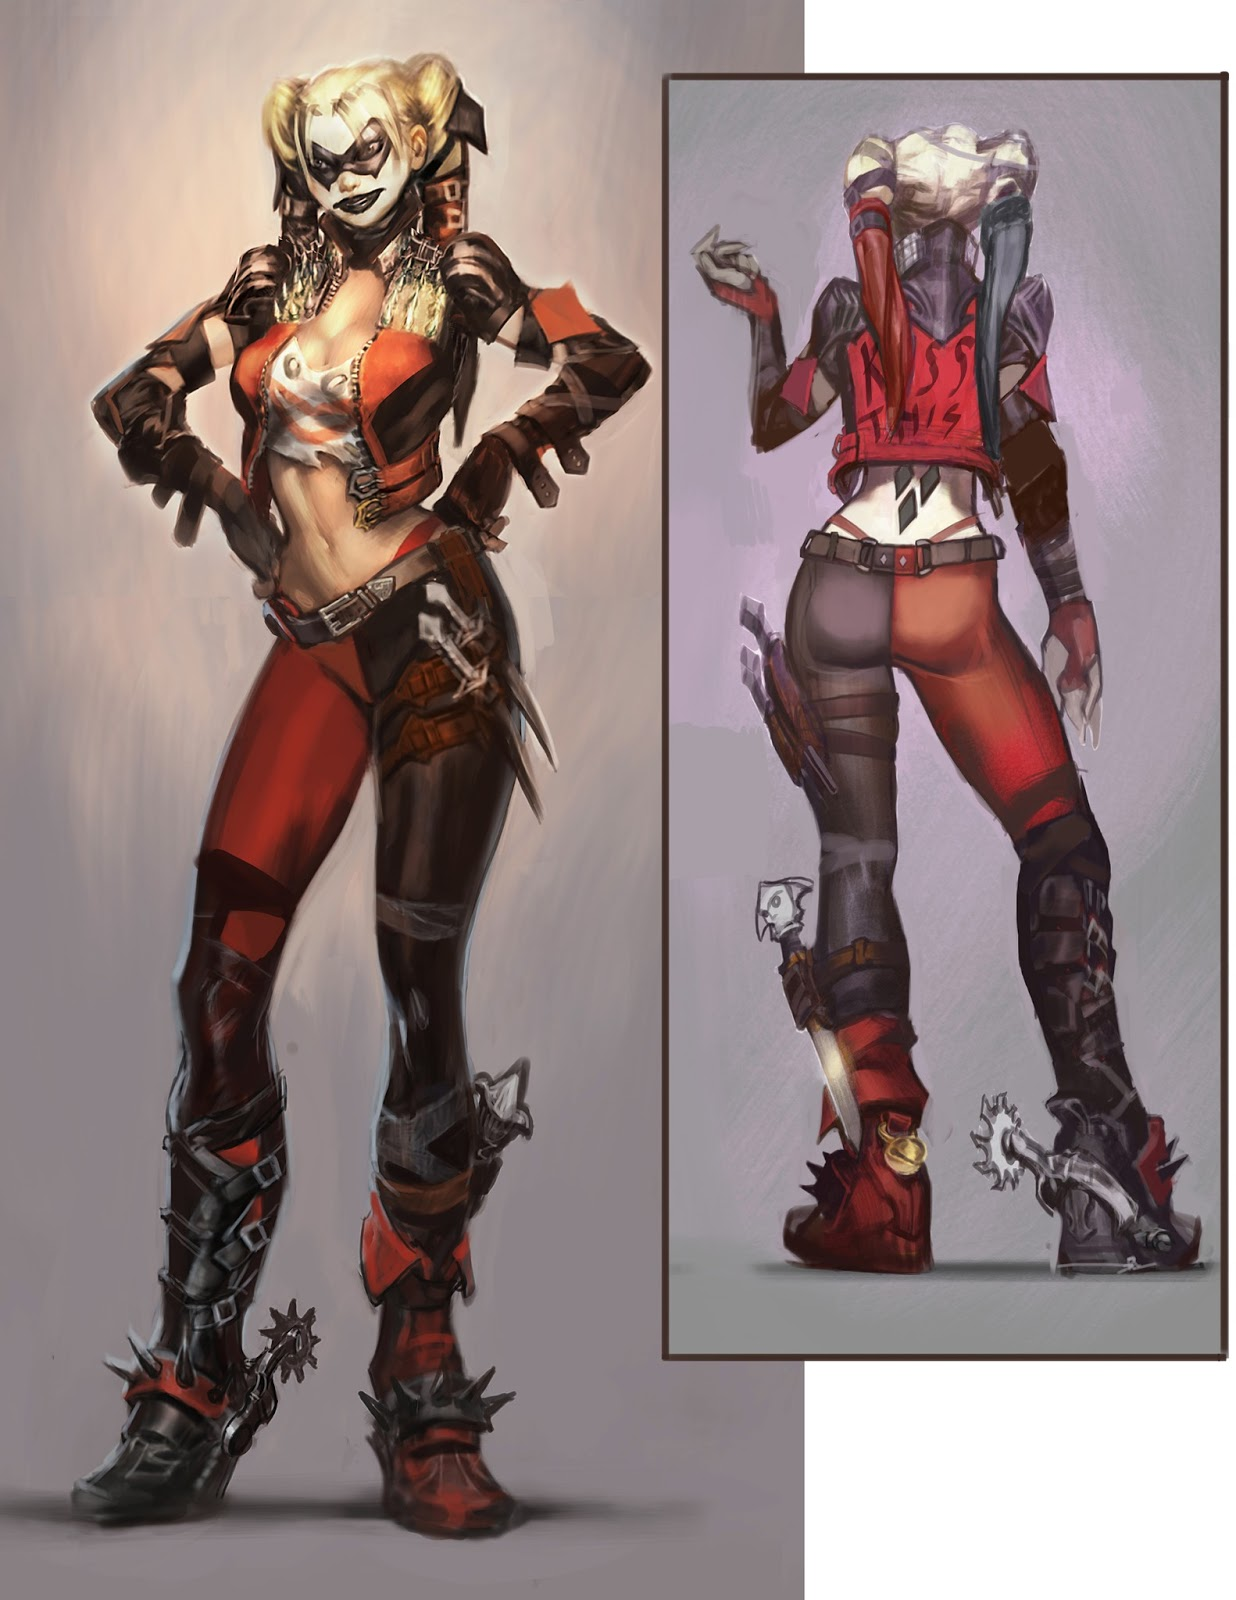 Harley Go Lightly! A Ha-ha-cienta For Harley Quinn The Injustice Of Harley Quinnu0026#39;s Costumes